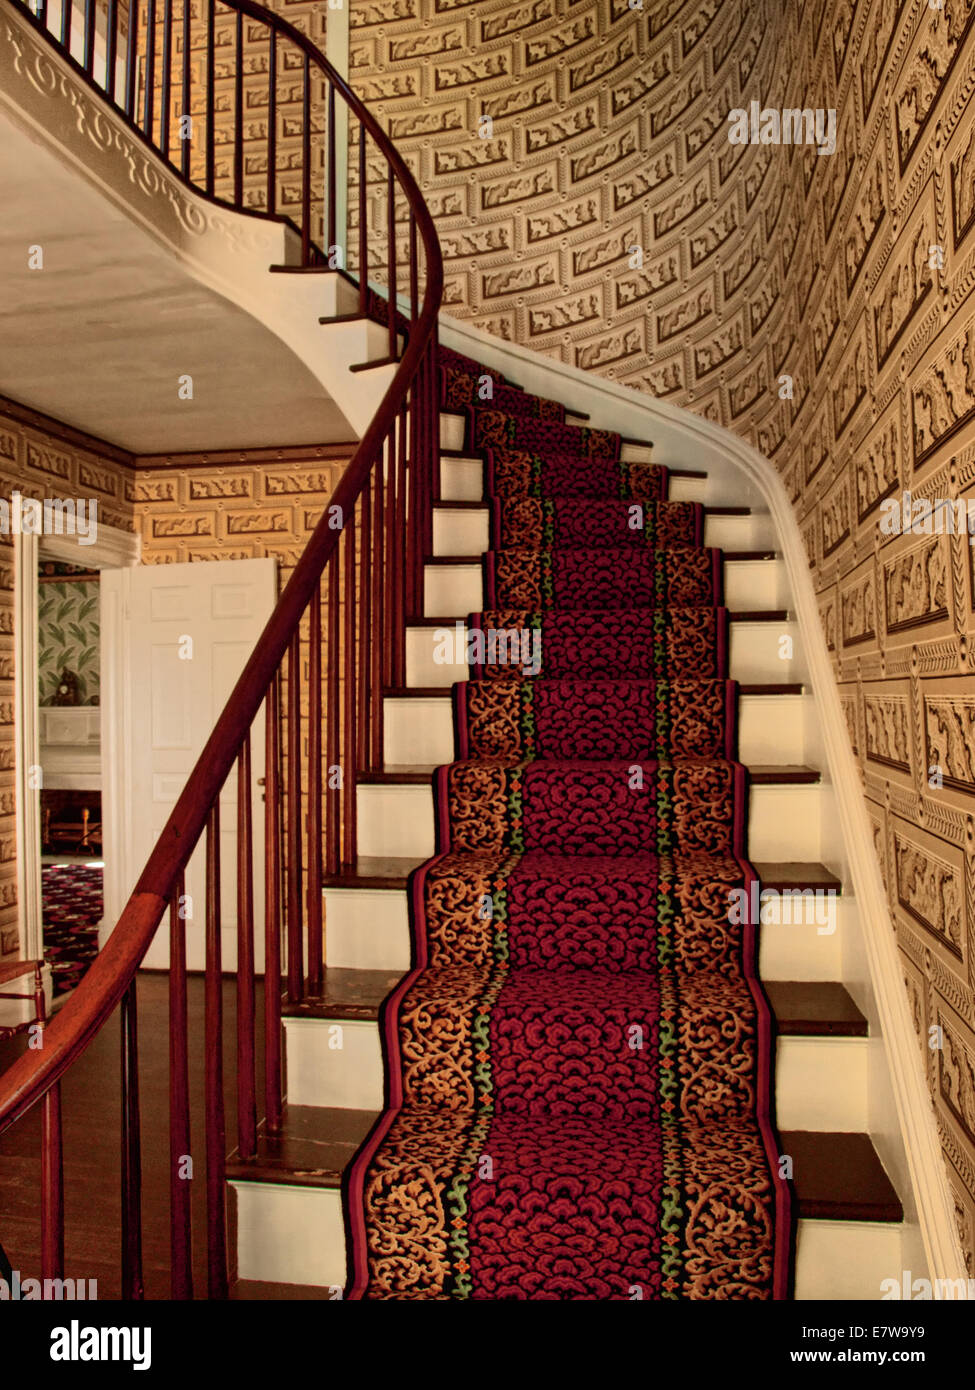 home interior with staircase - Stock Image